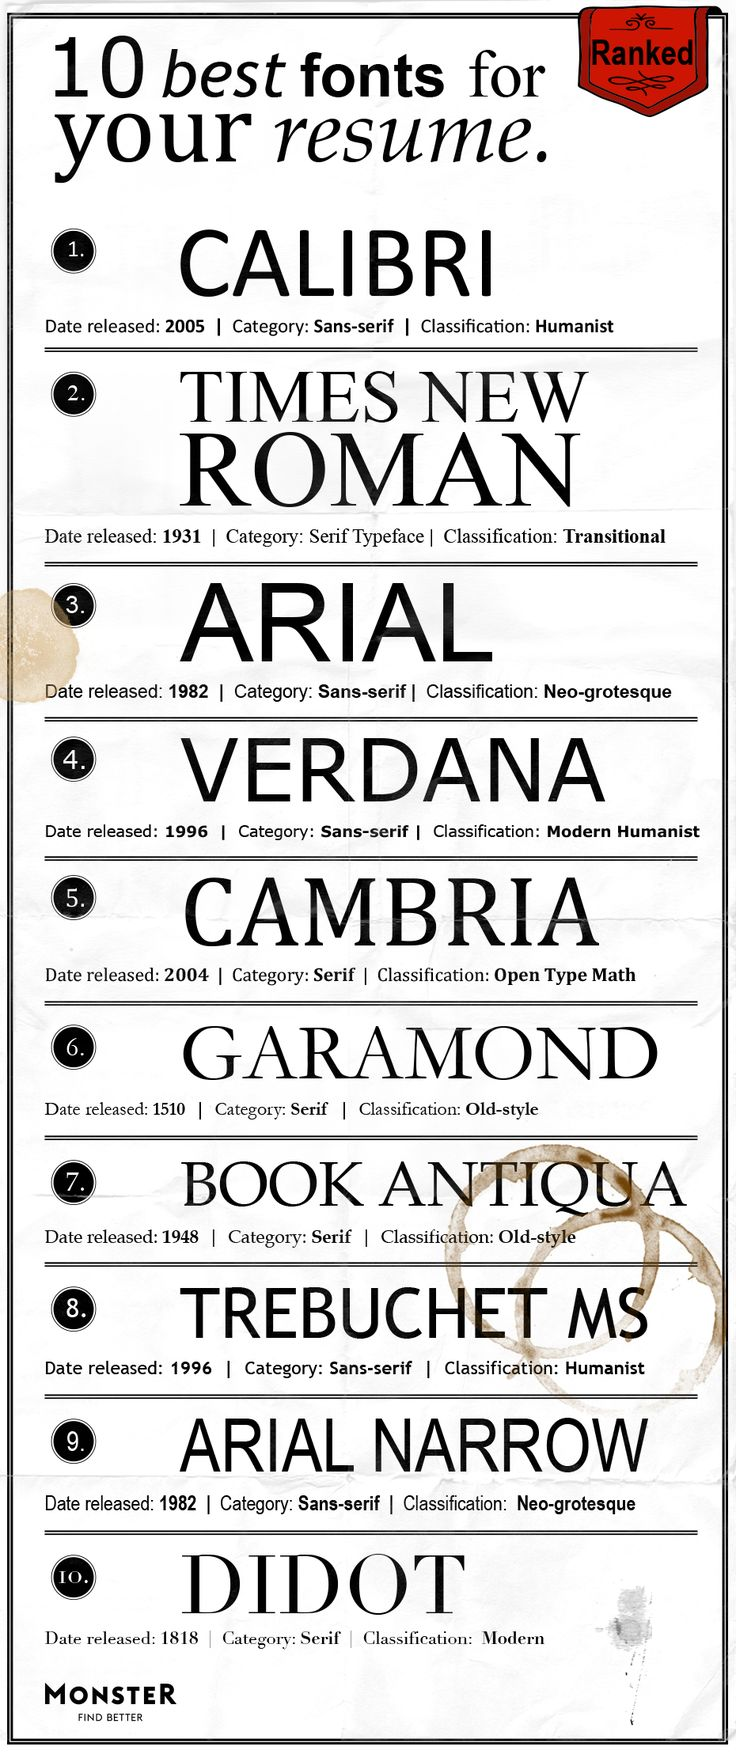 best fonts for your resume - How To Make Proper Resume